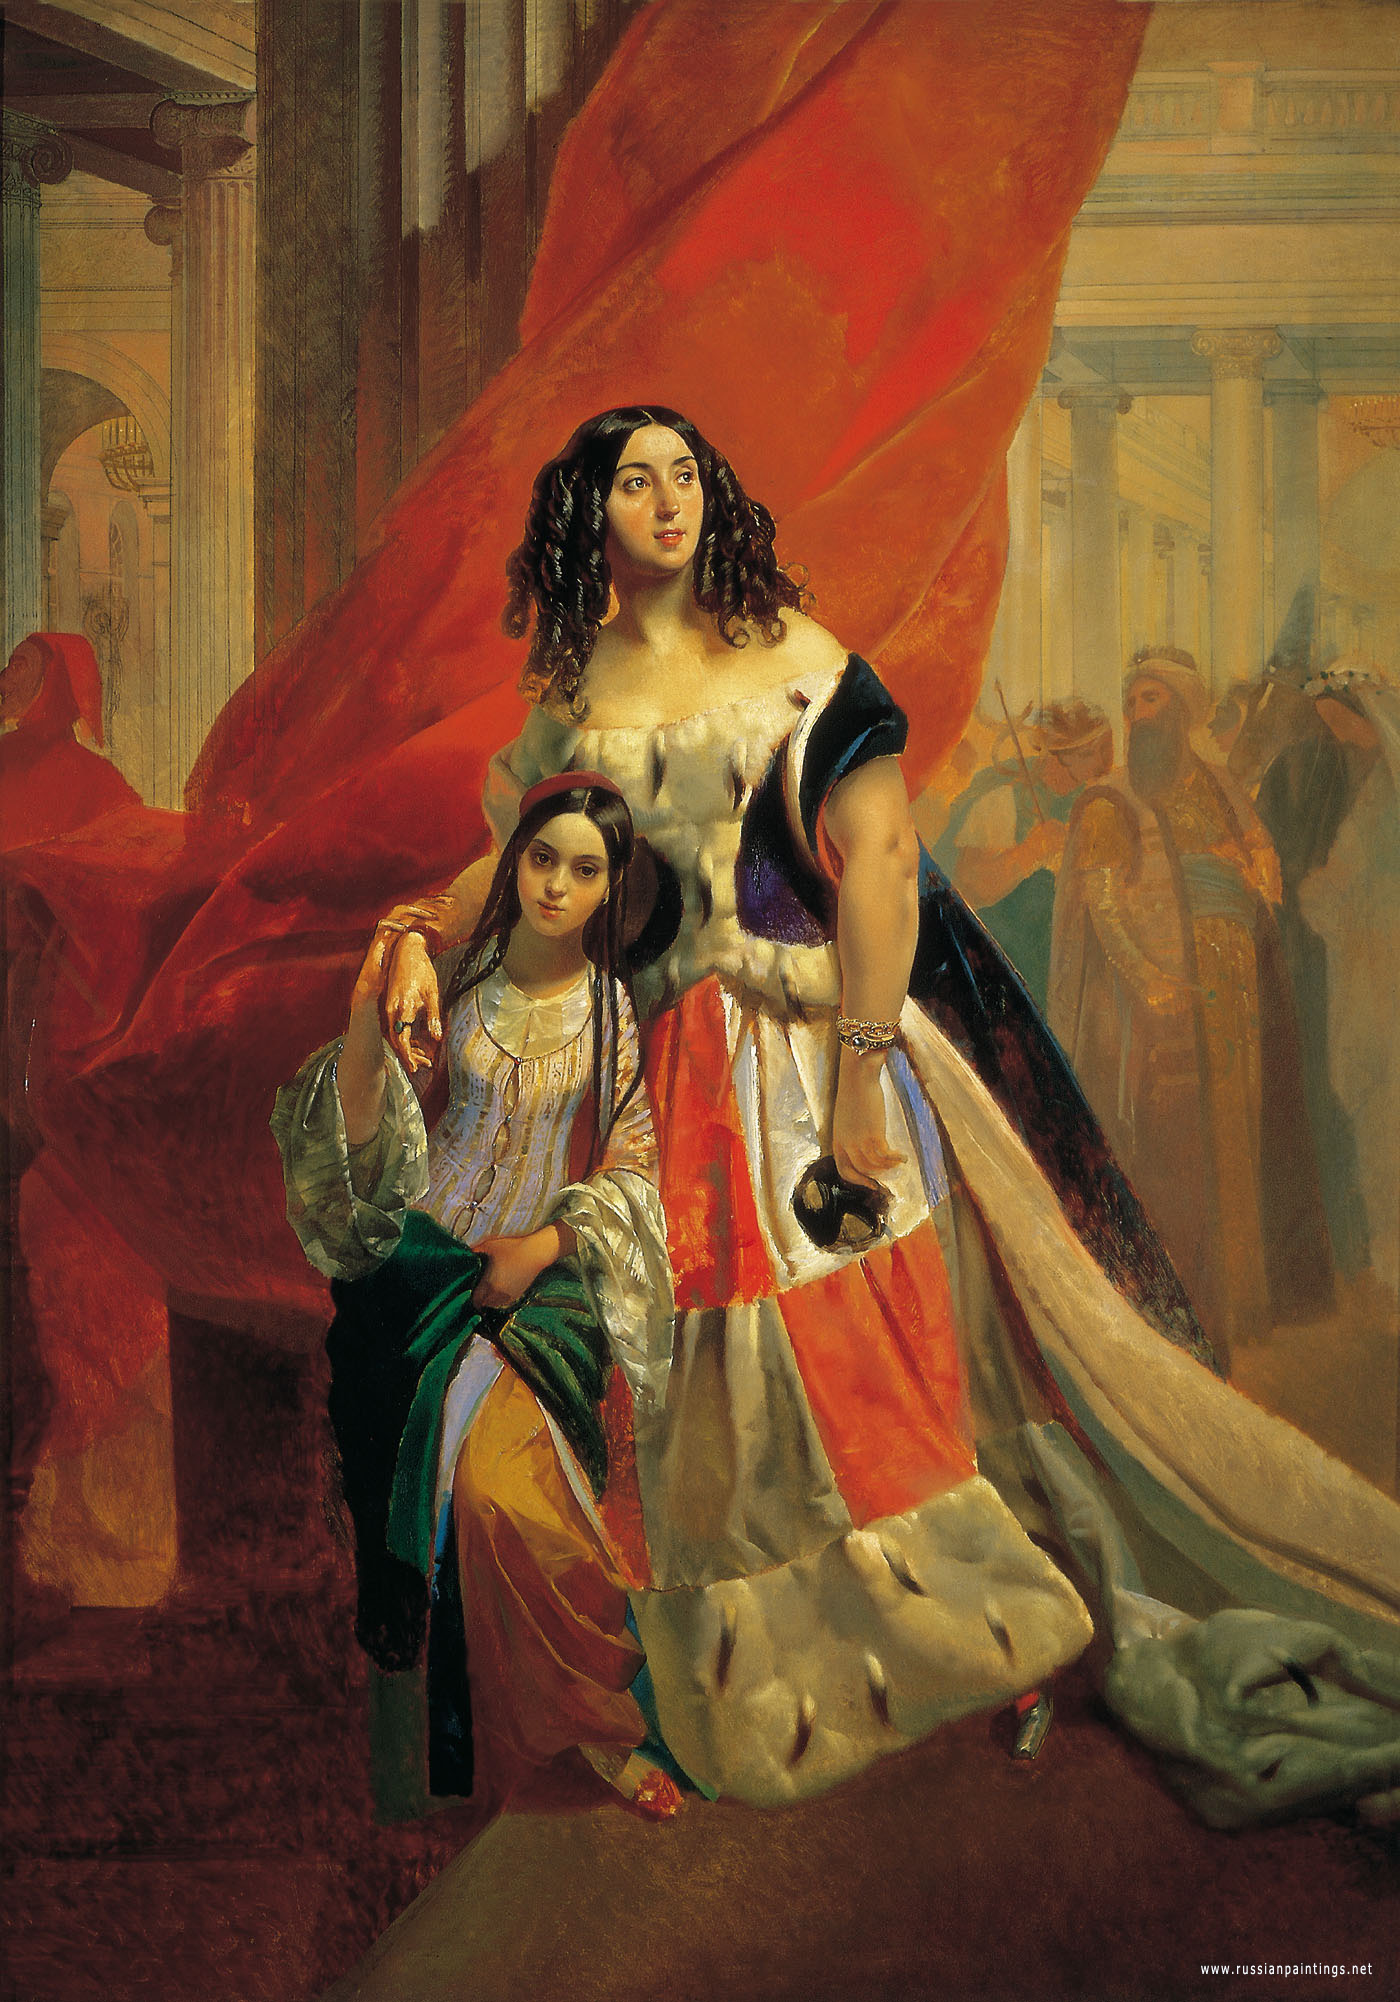 bryullov_karl_Portrait_of_the_Princess_Yuliya_Pavlovna_Samoilova_Retiring_from_the_Ball_with_Adopted_Daughter_Amaciliya_Pachchini_not_later_then_1842